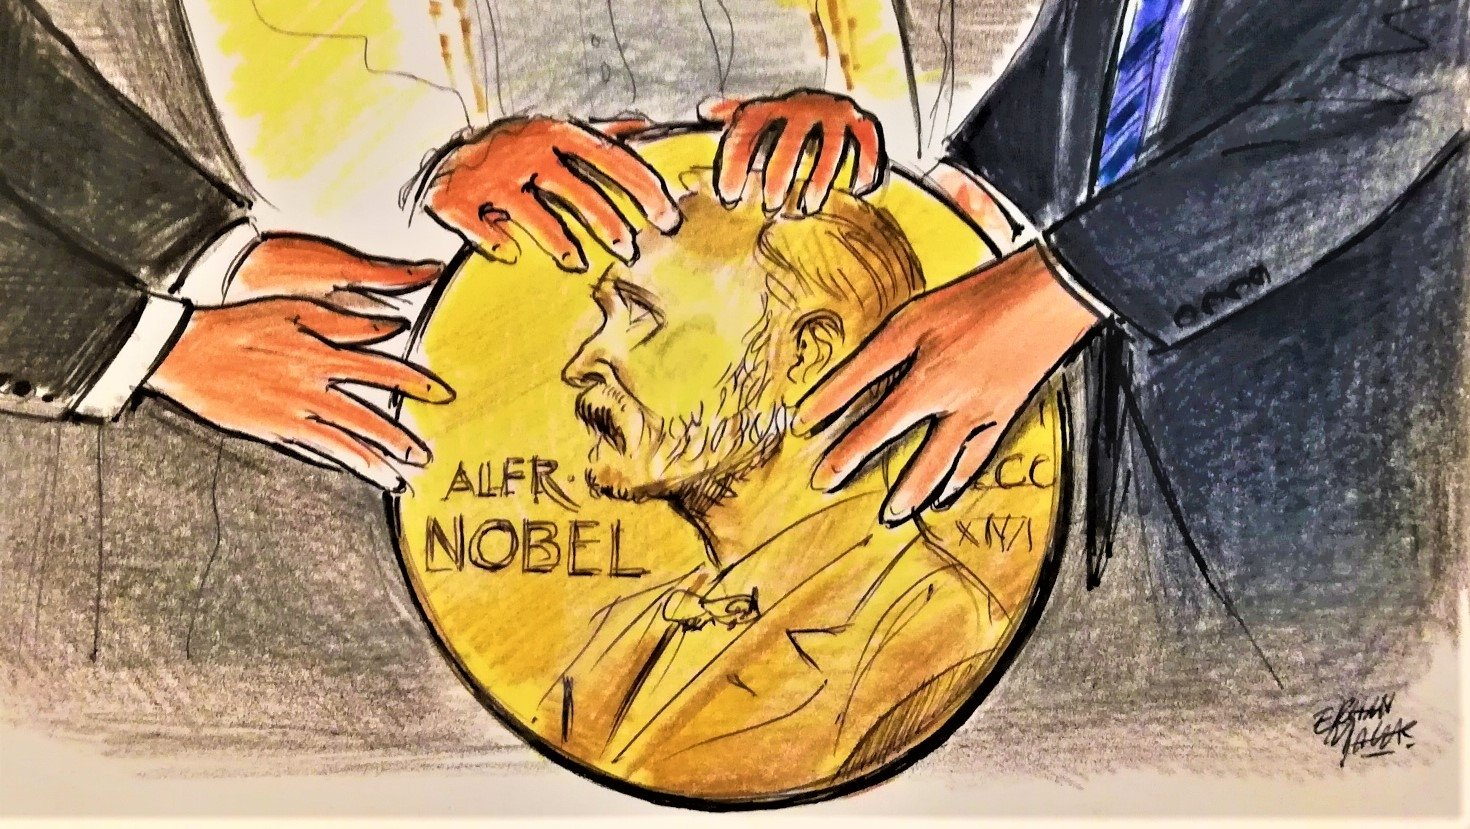 """In this illustration by Erhan Yalvaç, the Nobel Peace Prize resembles a symbolic """"orb,"""" on which former U.S. President Donald Trump, Saudi Arabia's King Salman and Egypt's usurper president, Abdel-Fattah el-Sissi lay their hands together to harbinger their renewed relations during a meeting in Saudi Arabia's Riyadh in 2017."""